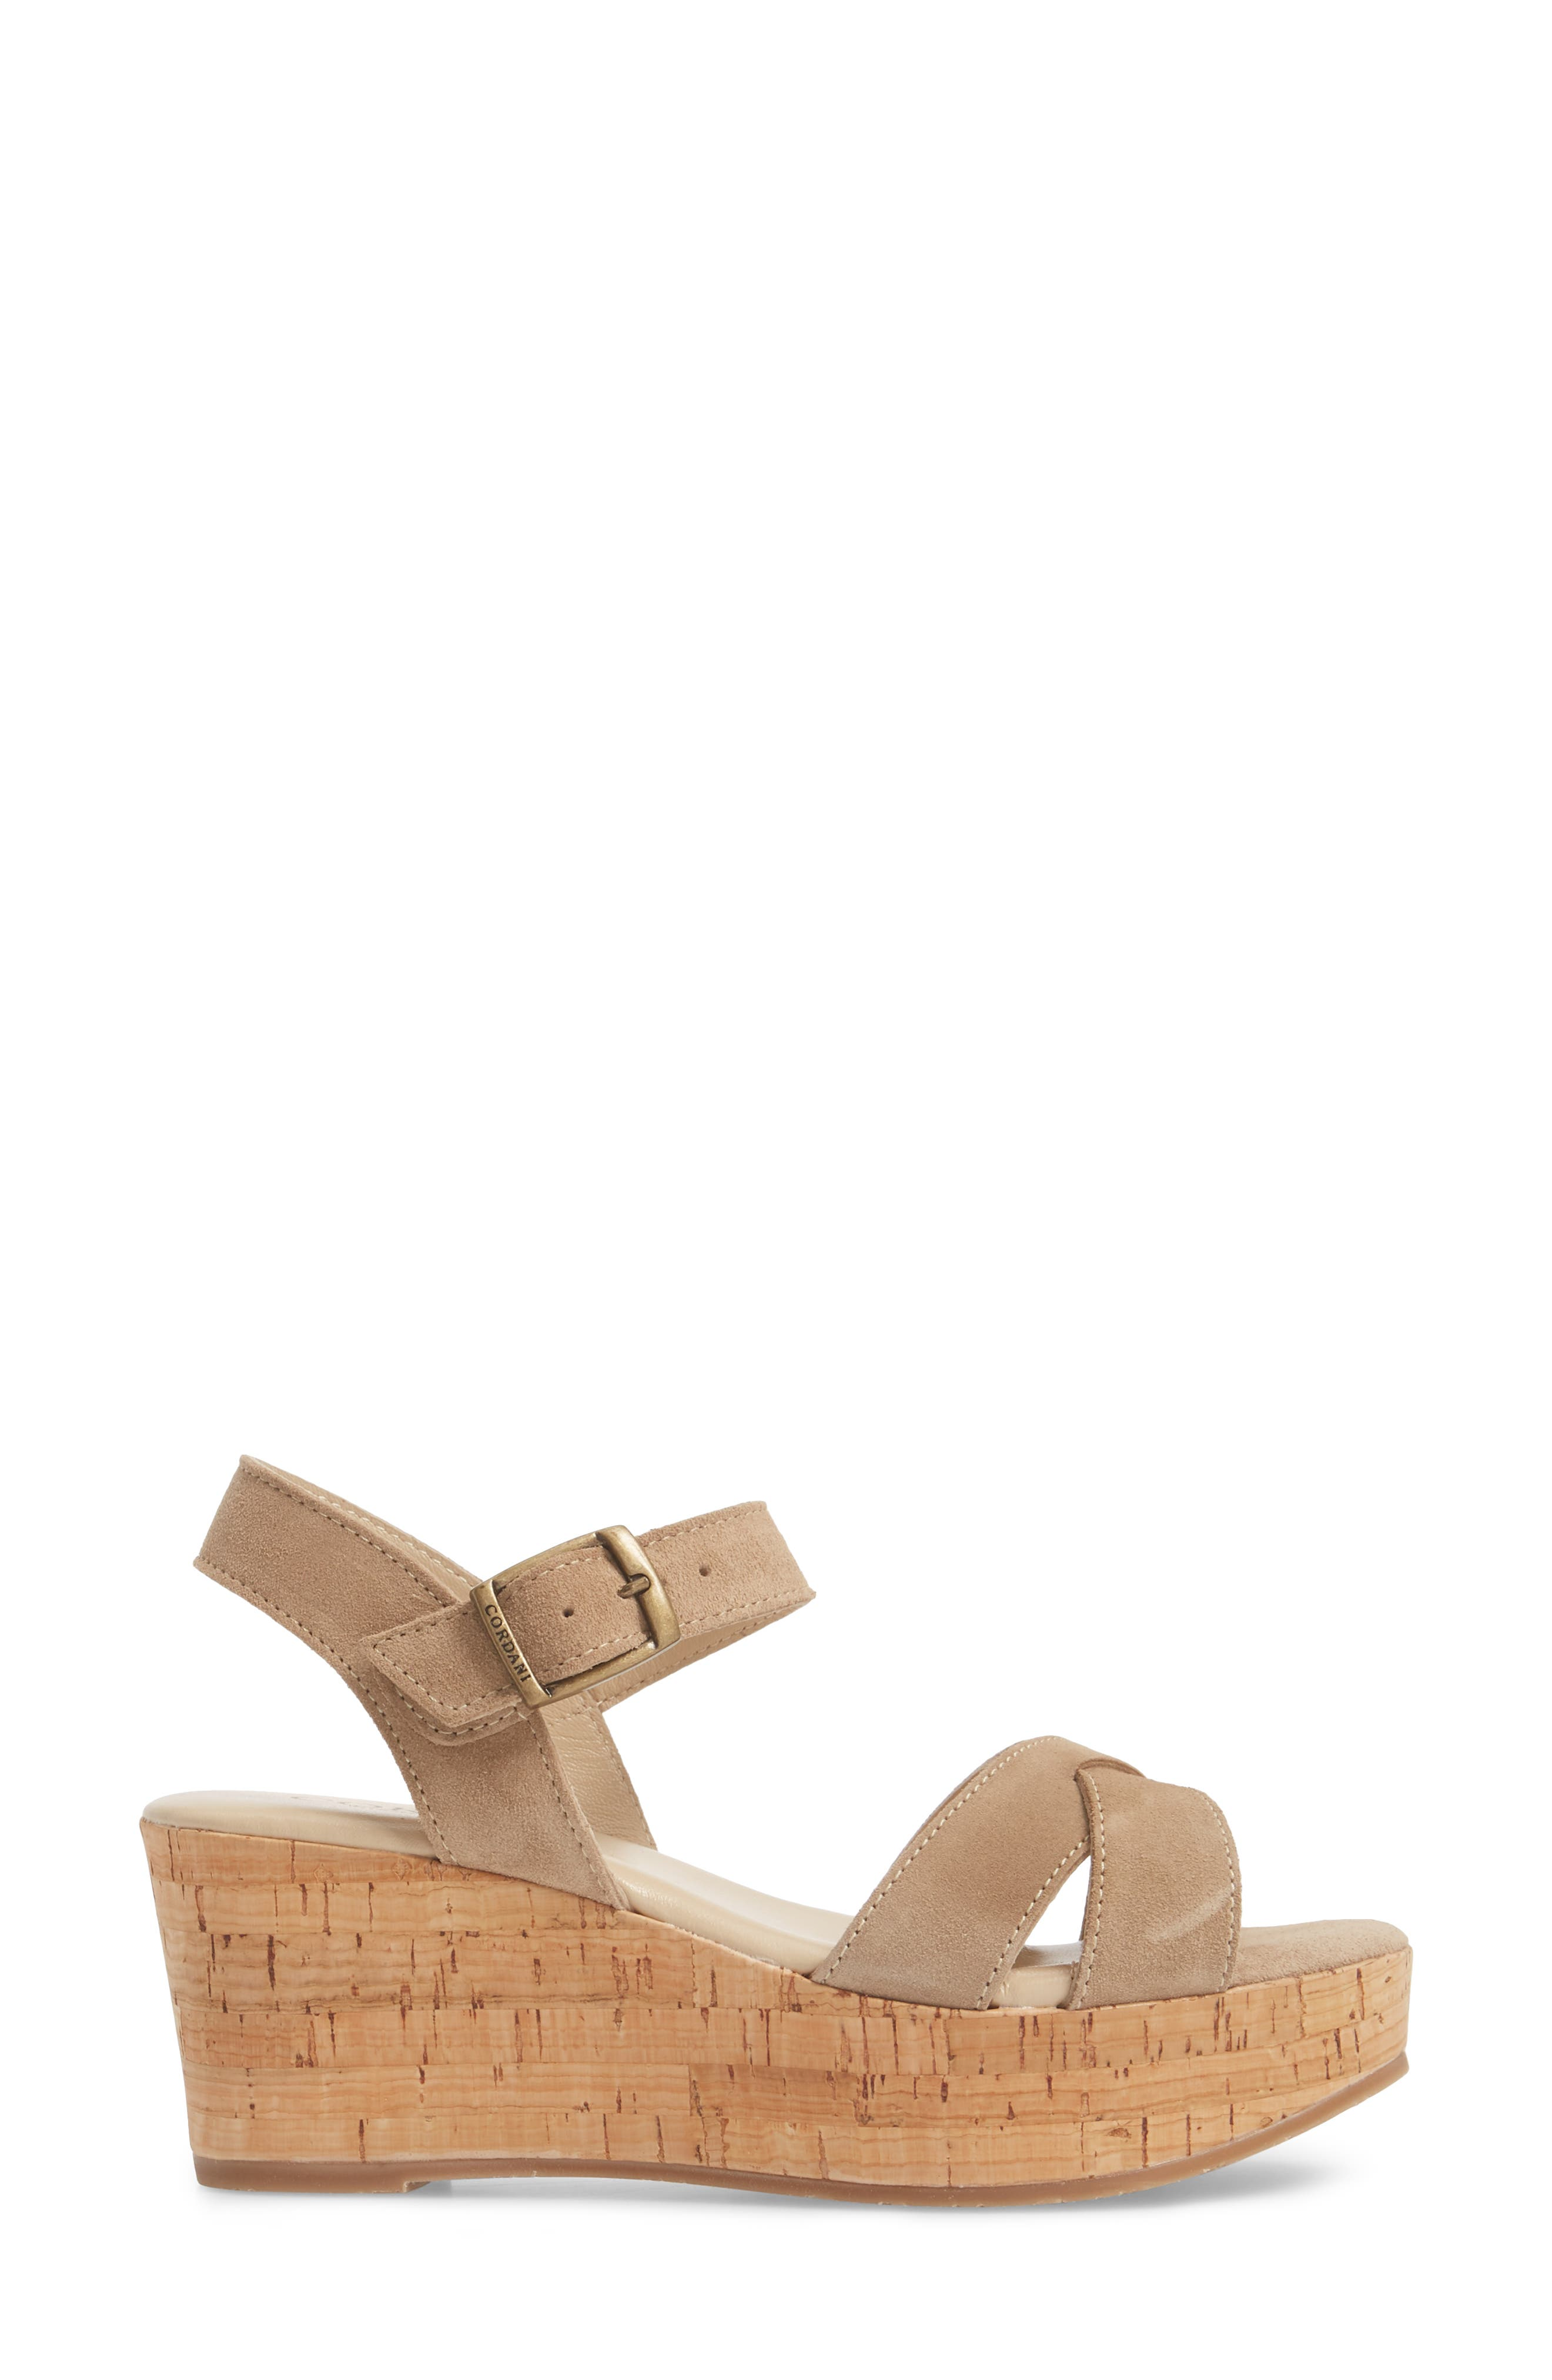 Candy Wedge Sandal,                             Alternate thumbnail 3, color,                             CORDA SUEDE